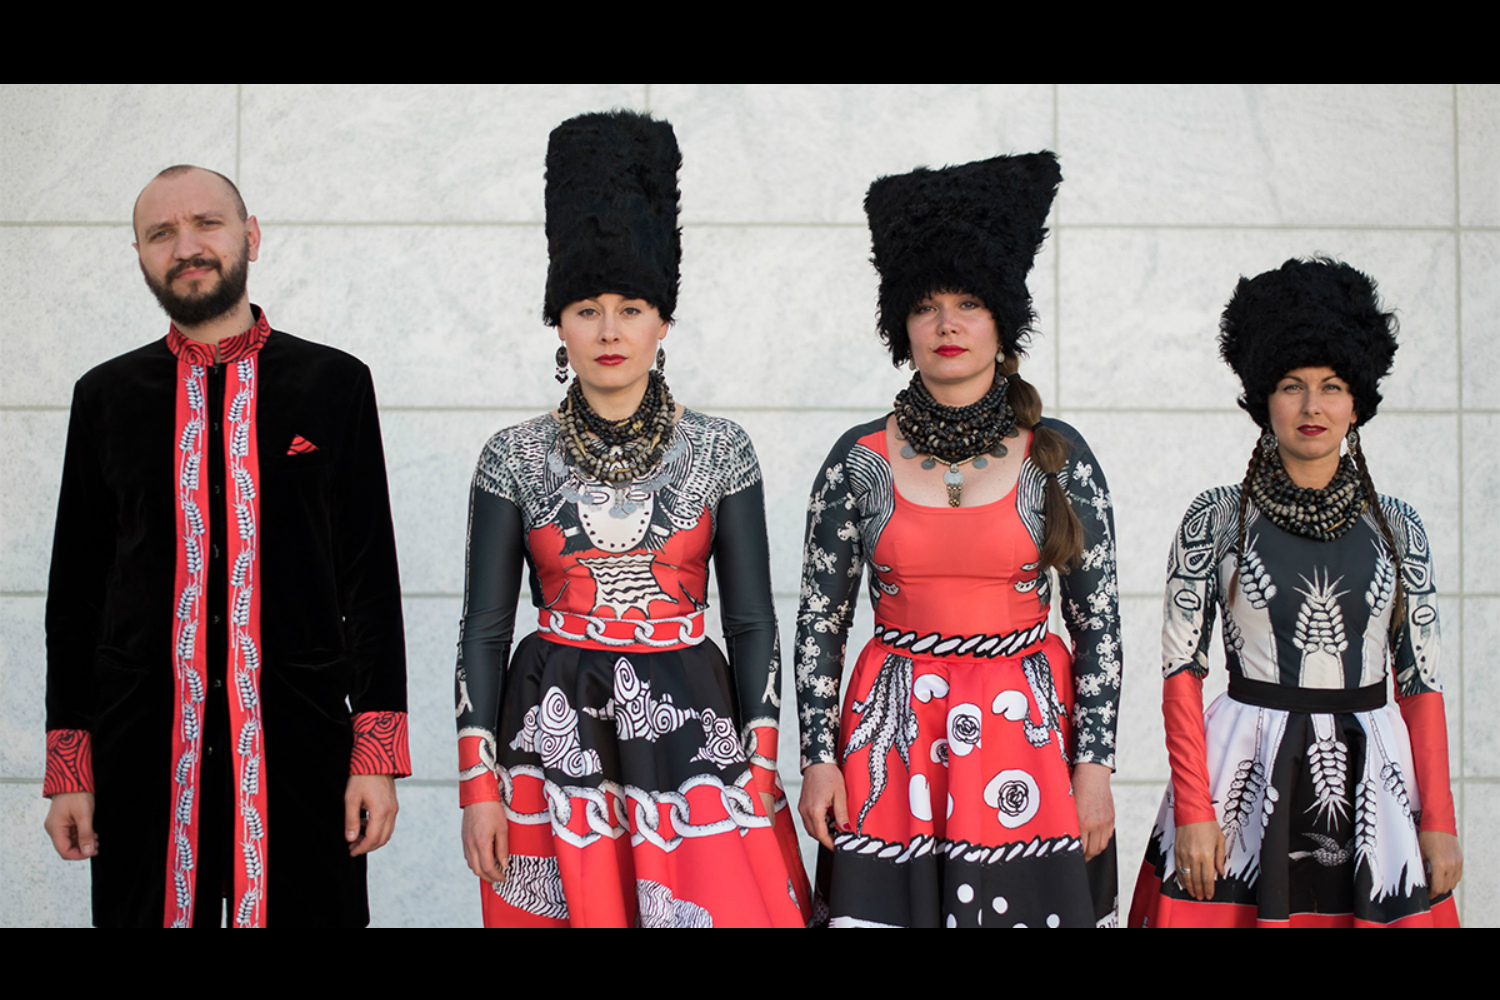 DakhaBrakha break down their pioneering sound, talk punk ethic + new album